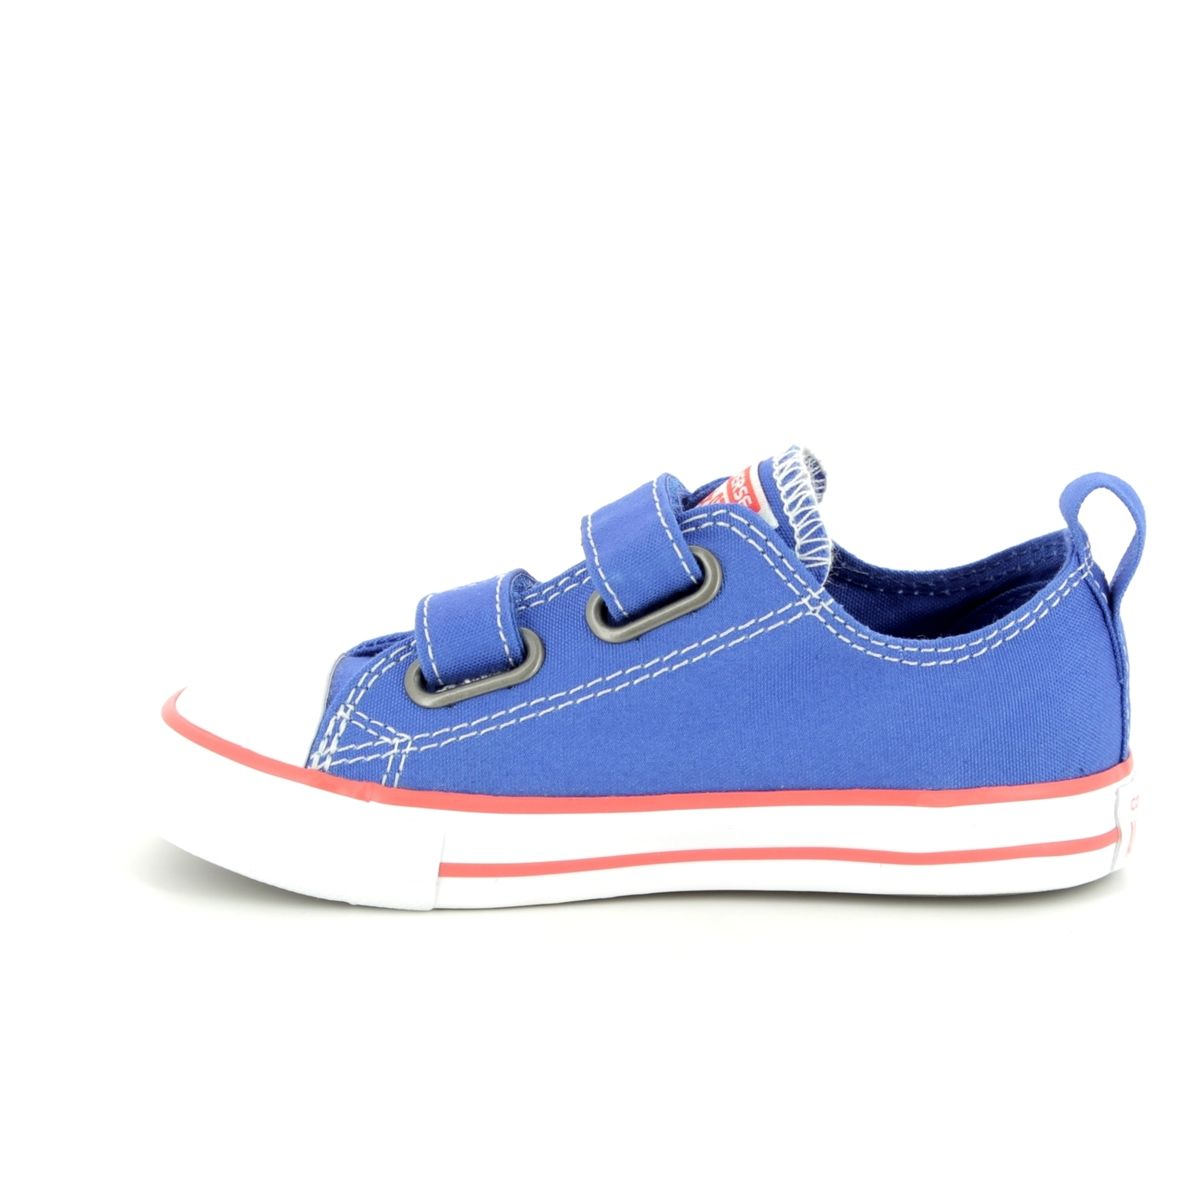 3c63aba92100 Converse All Star Ox Velcro Infants 760050C Blue Kids trainers